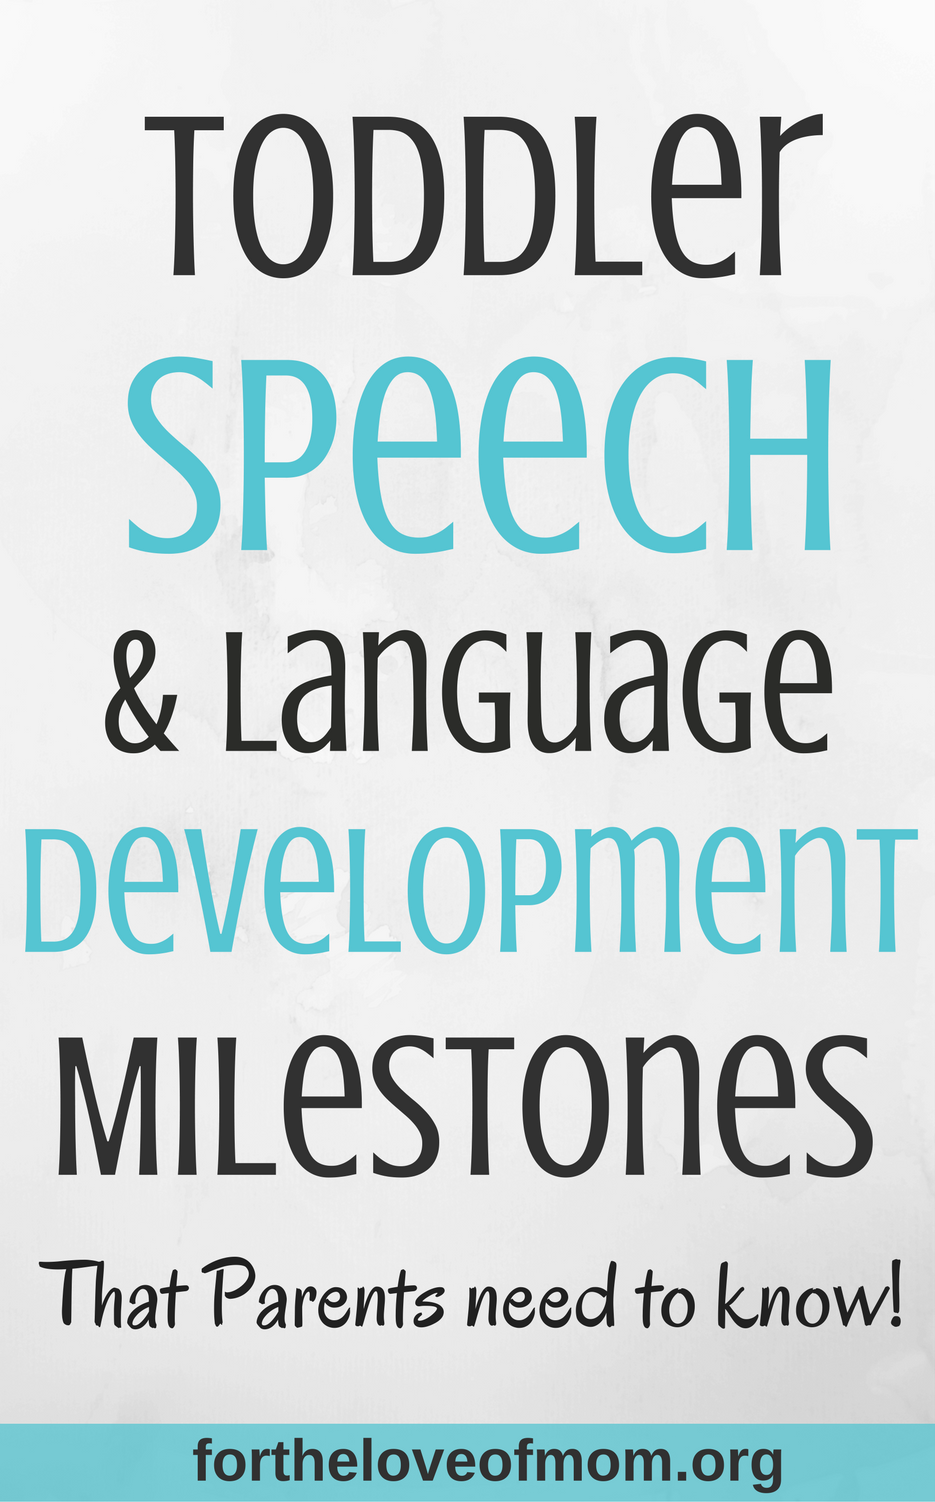 Toddler Speech & Language Development Milestones | How to Recognize Speech or Language Delay in Toddlers | #parenting | #toddlers | #momlife | #momlifeisthebestlife | www.fortheloveofmom.org